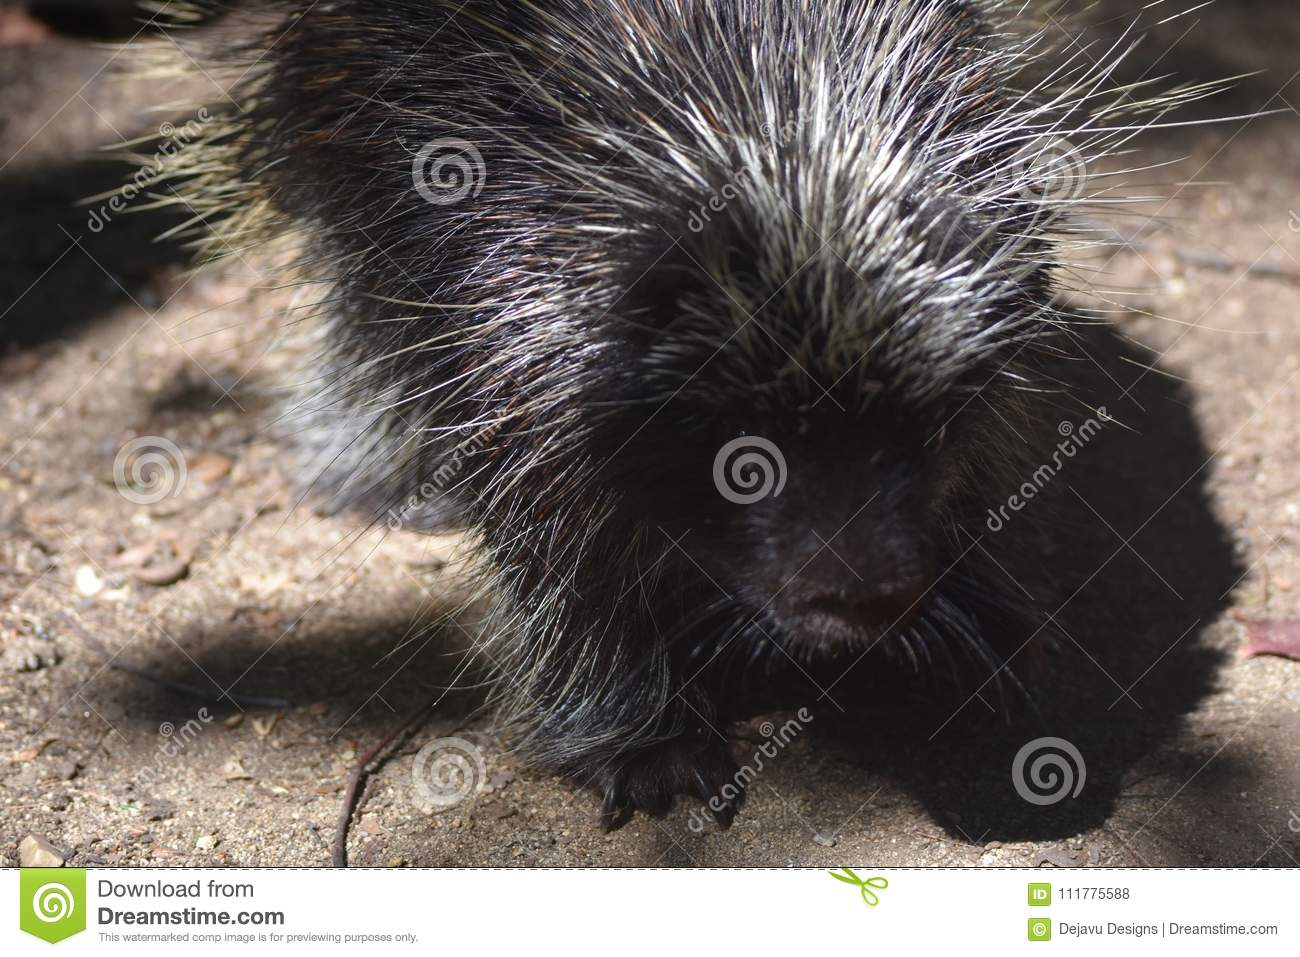 Awesome close up photo of a wild porcupine